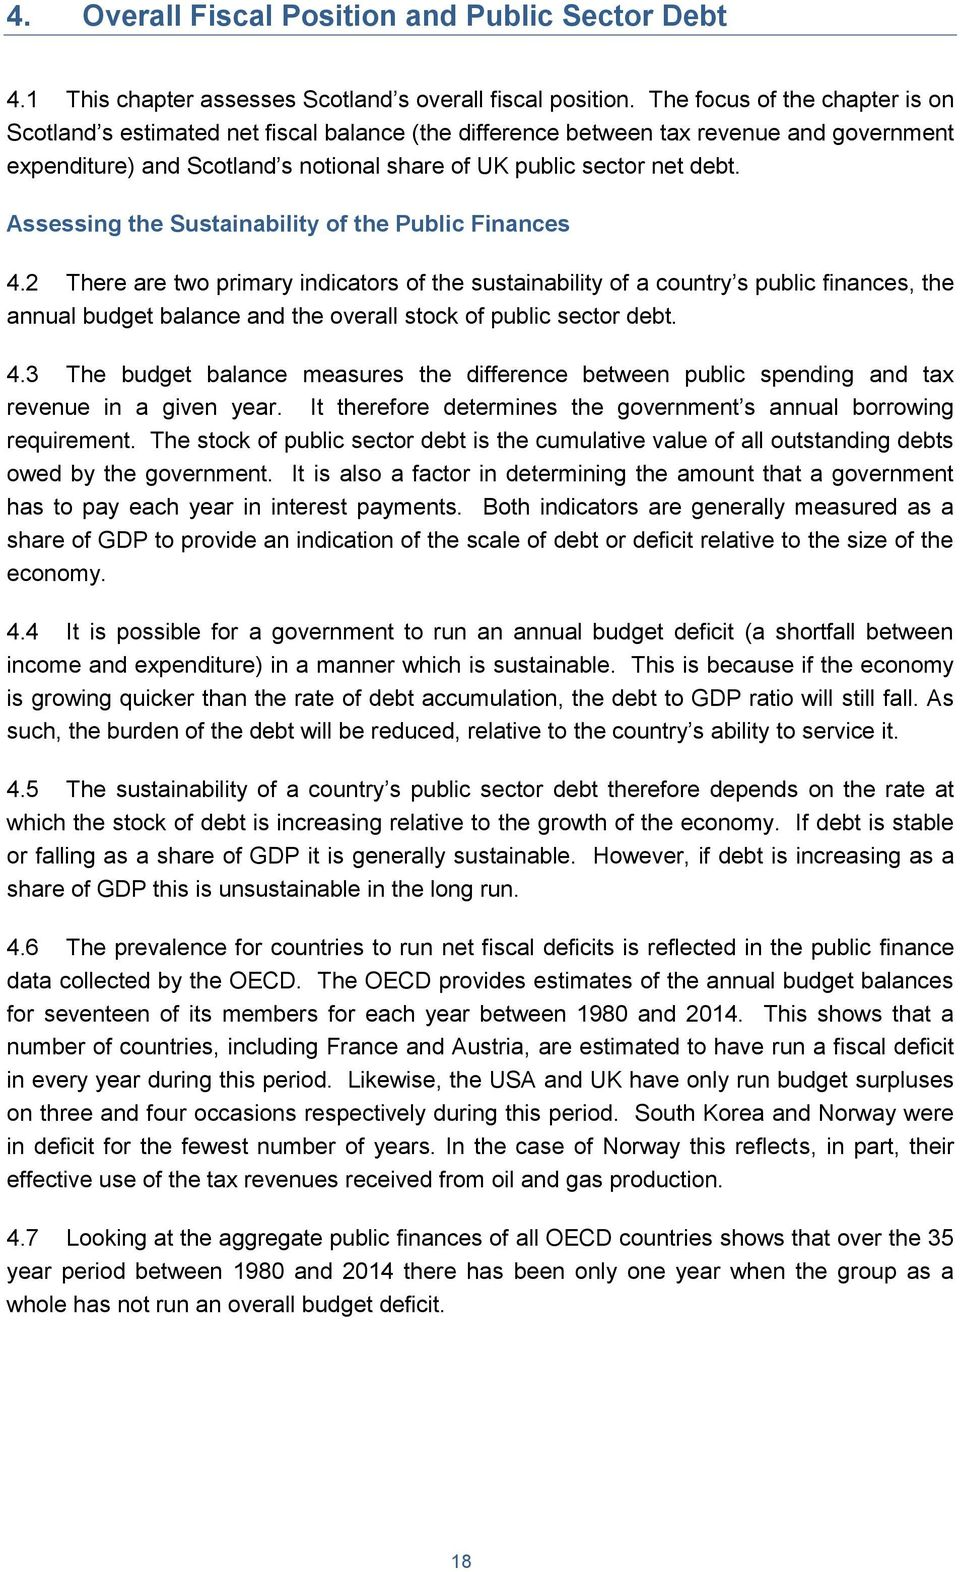 Assessing the Sustainability of the Public Finances 4.